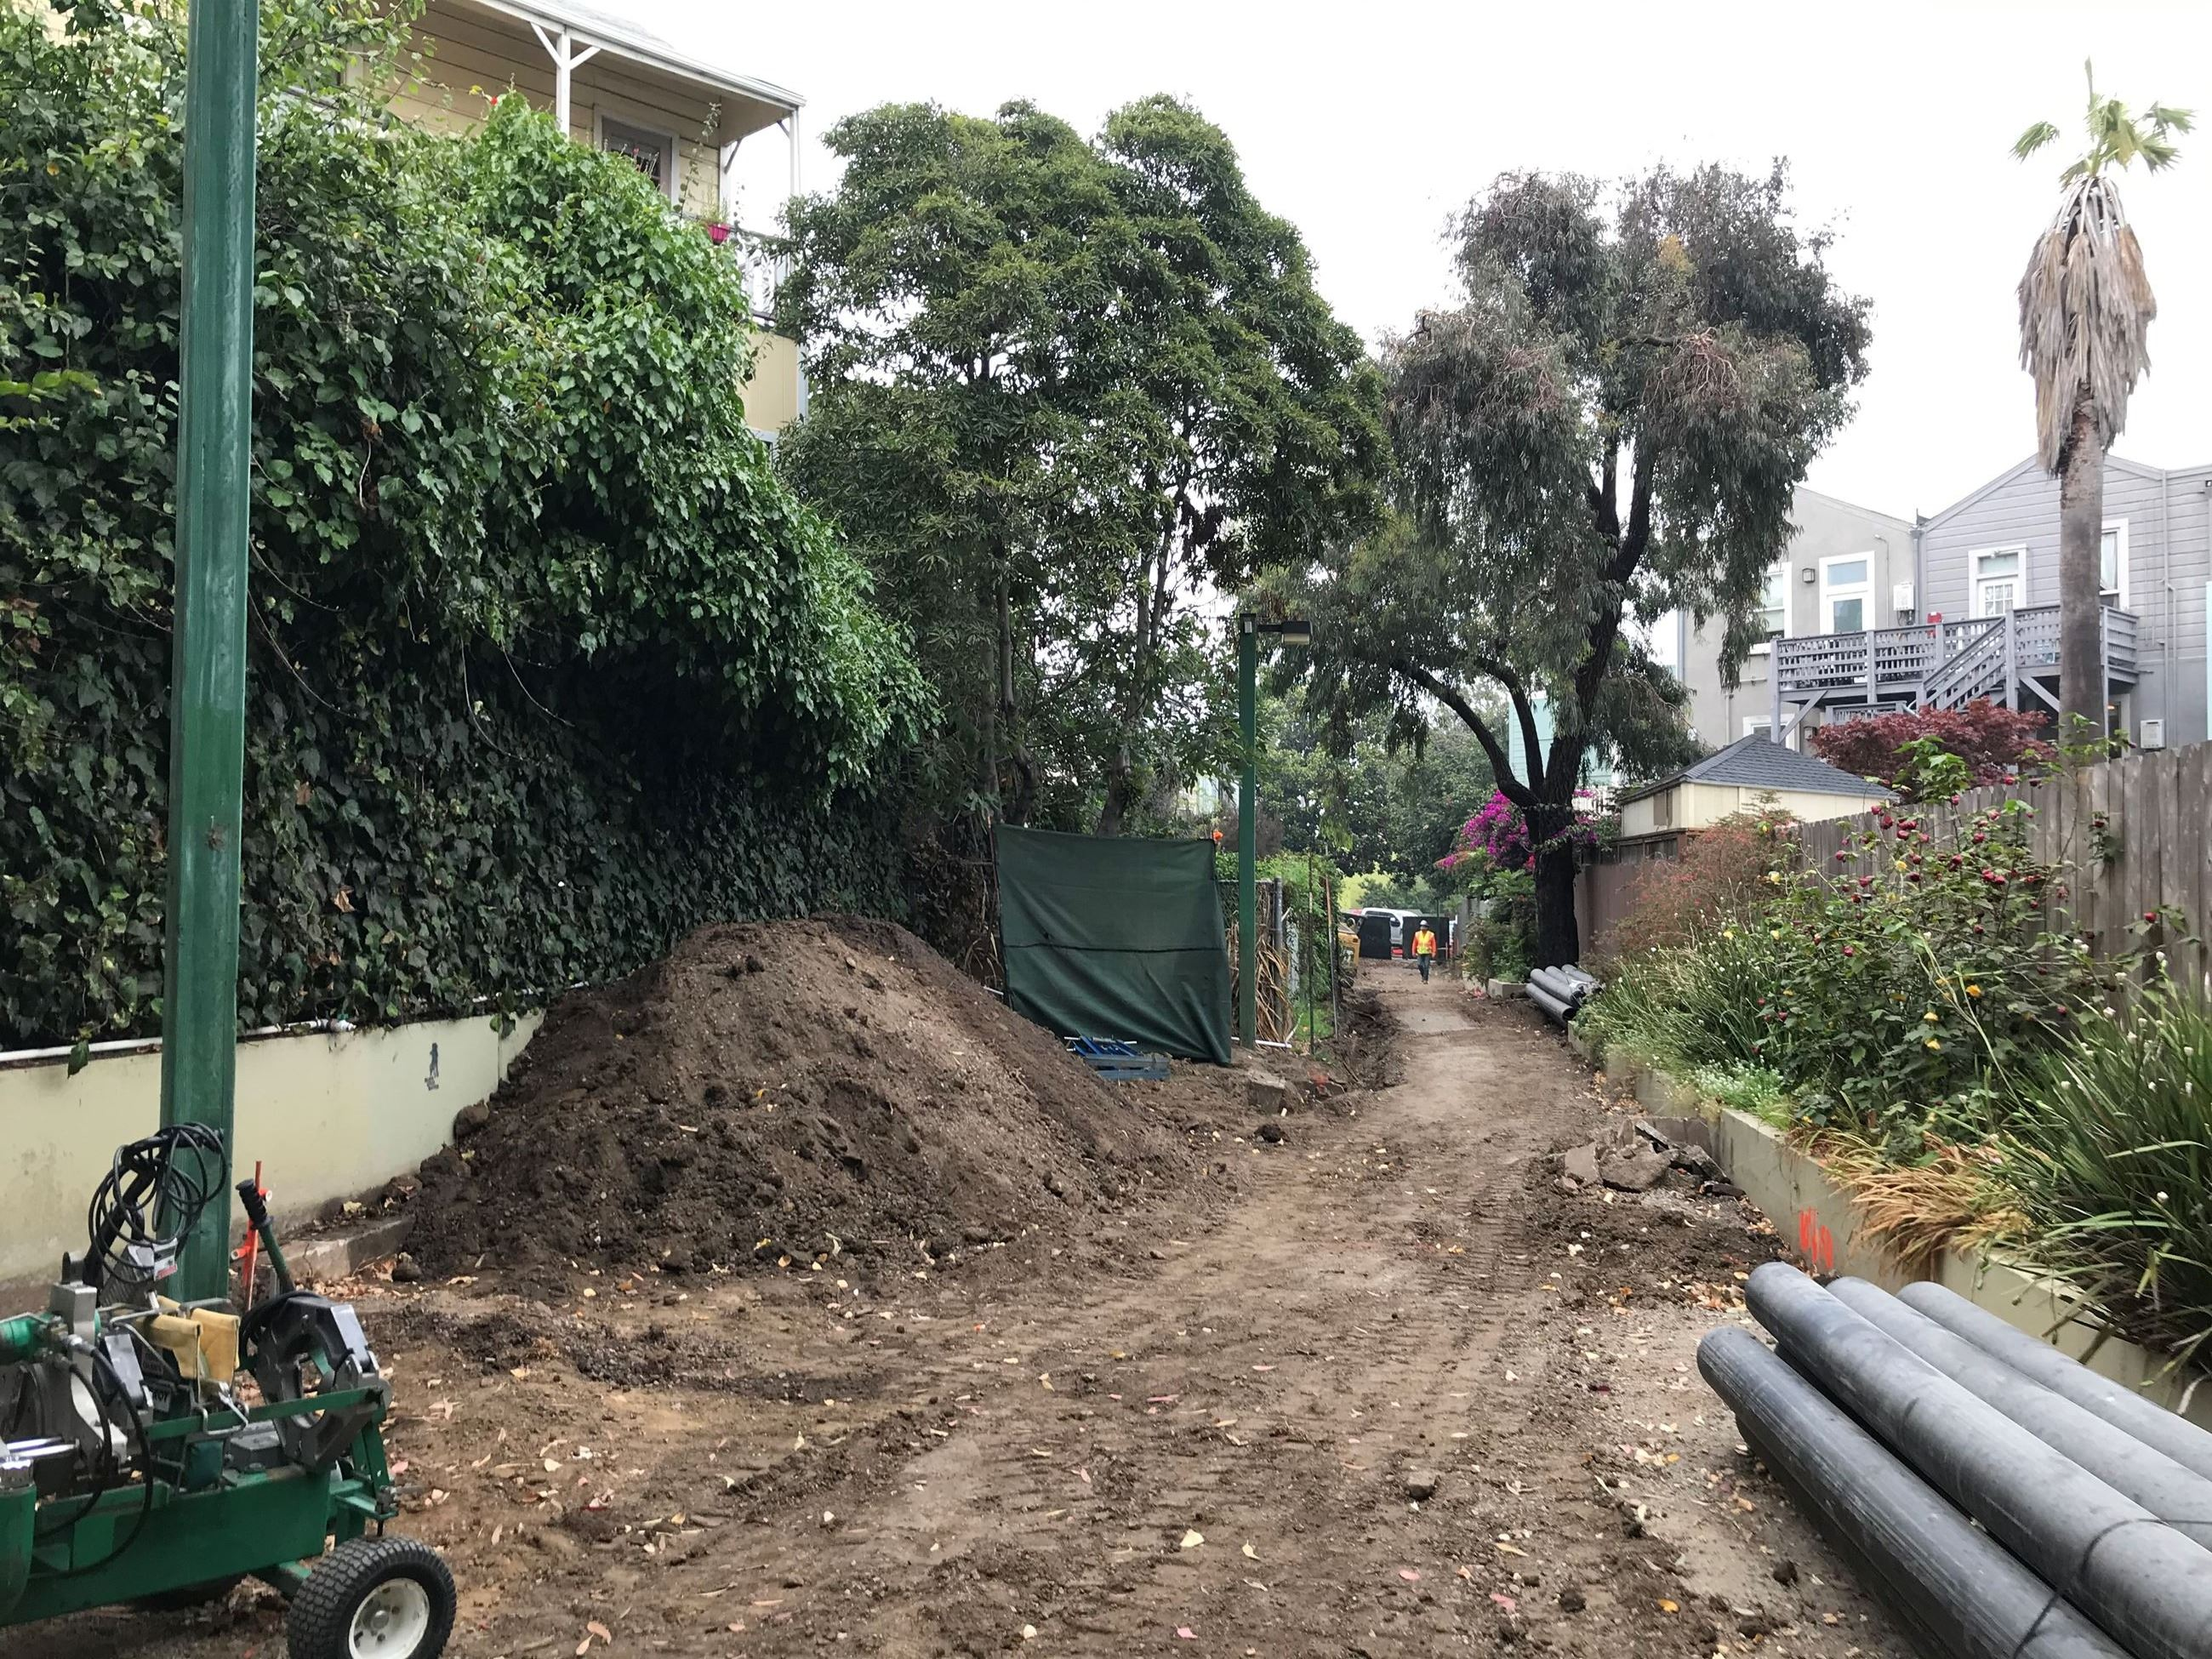 Large drainage pipes, light equipment and soil pile on top of fresh soil.